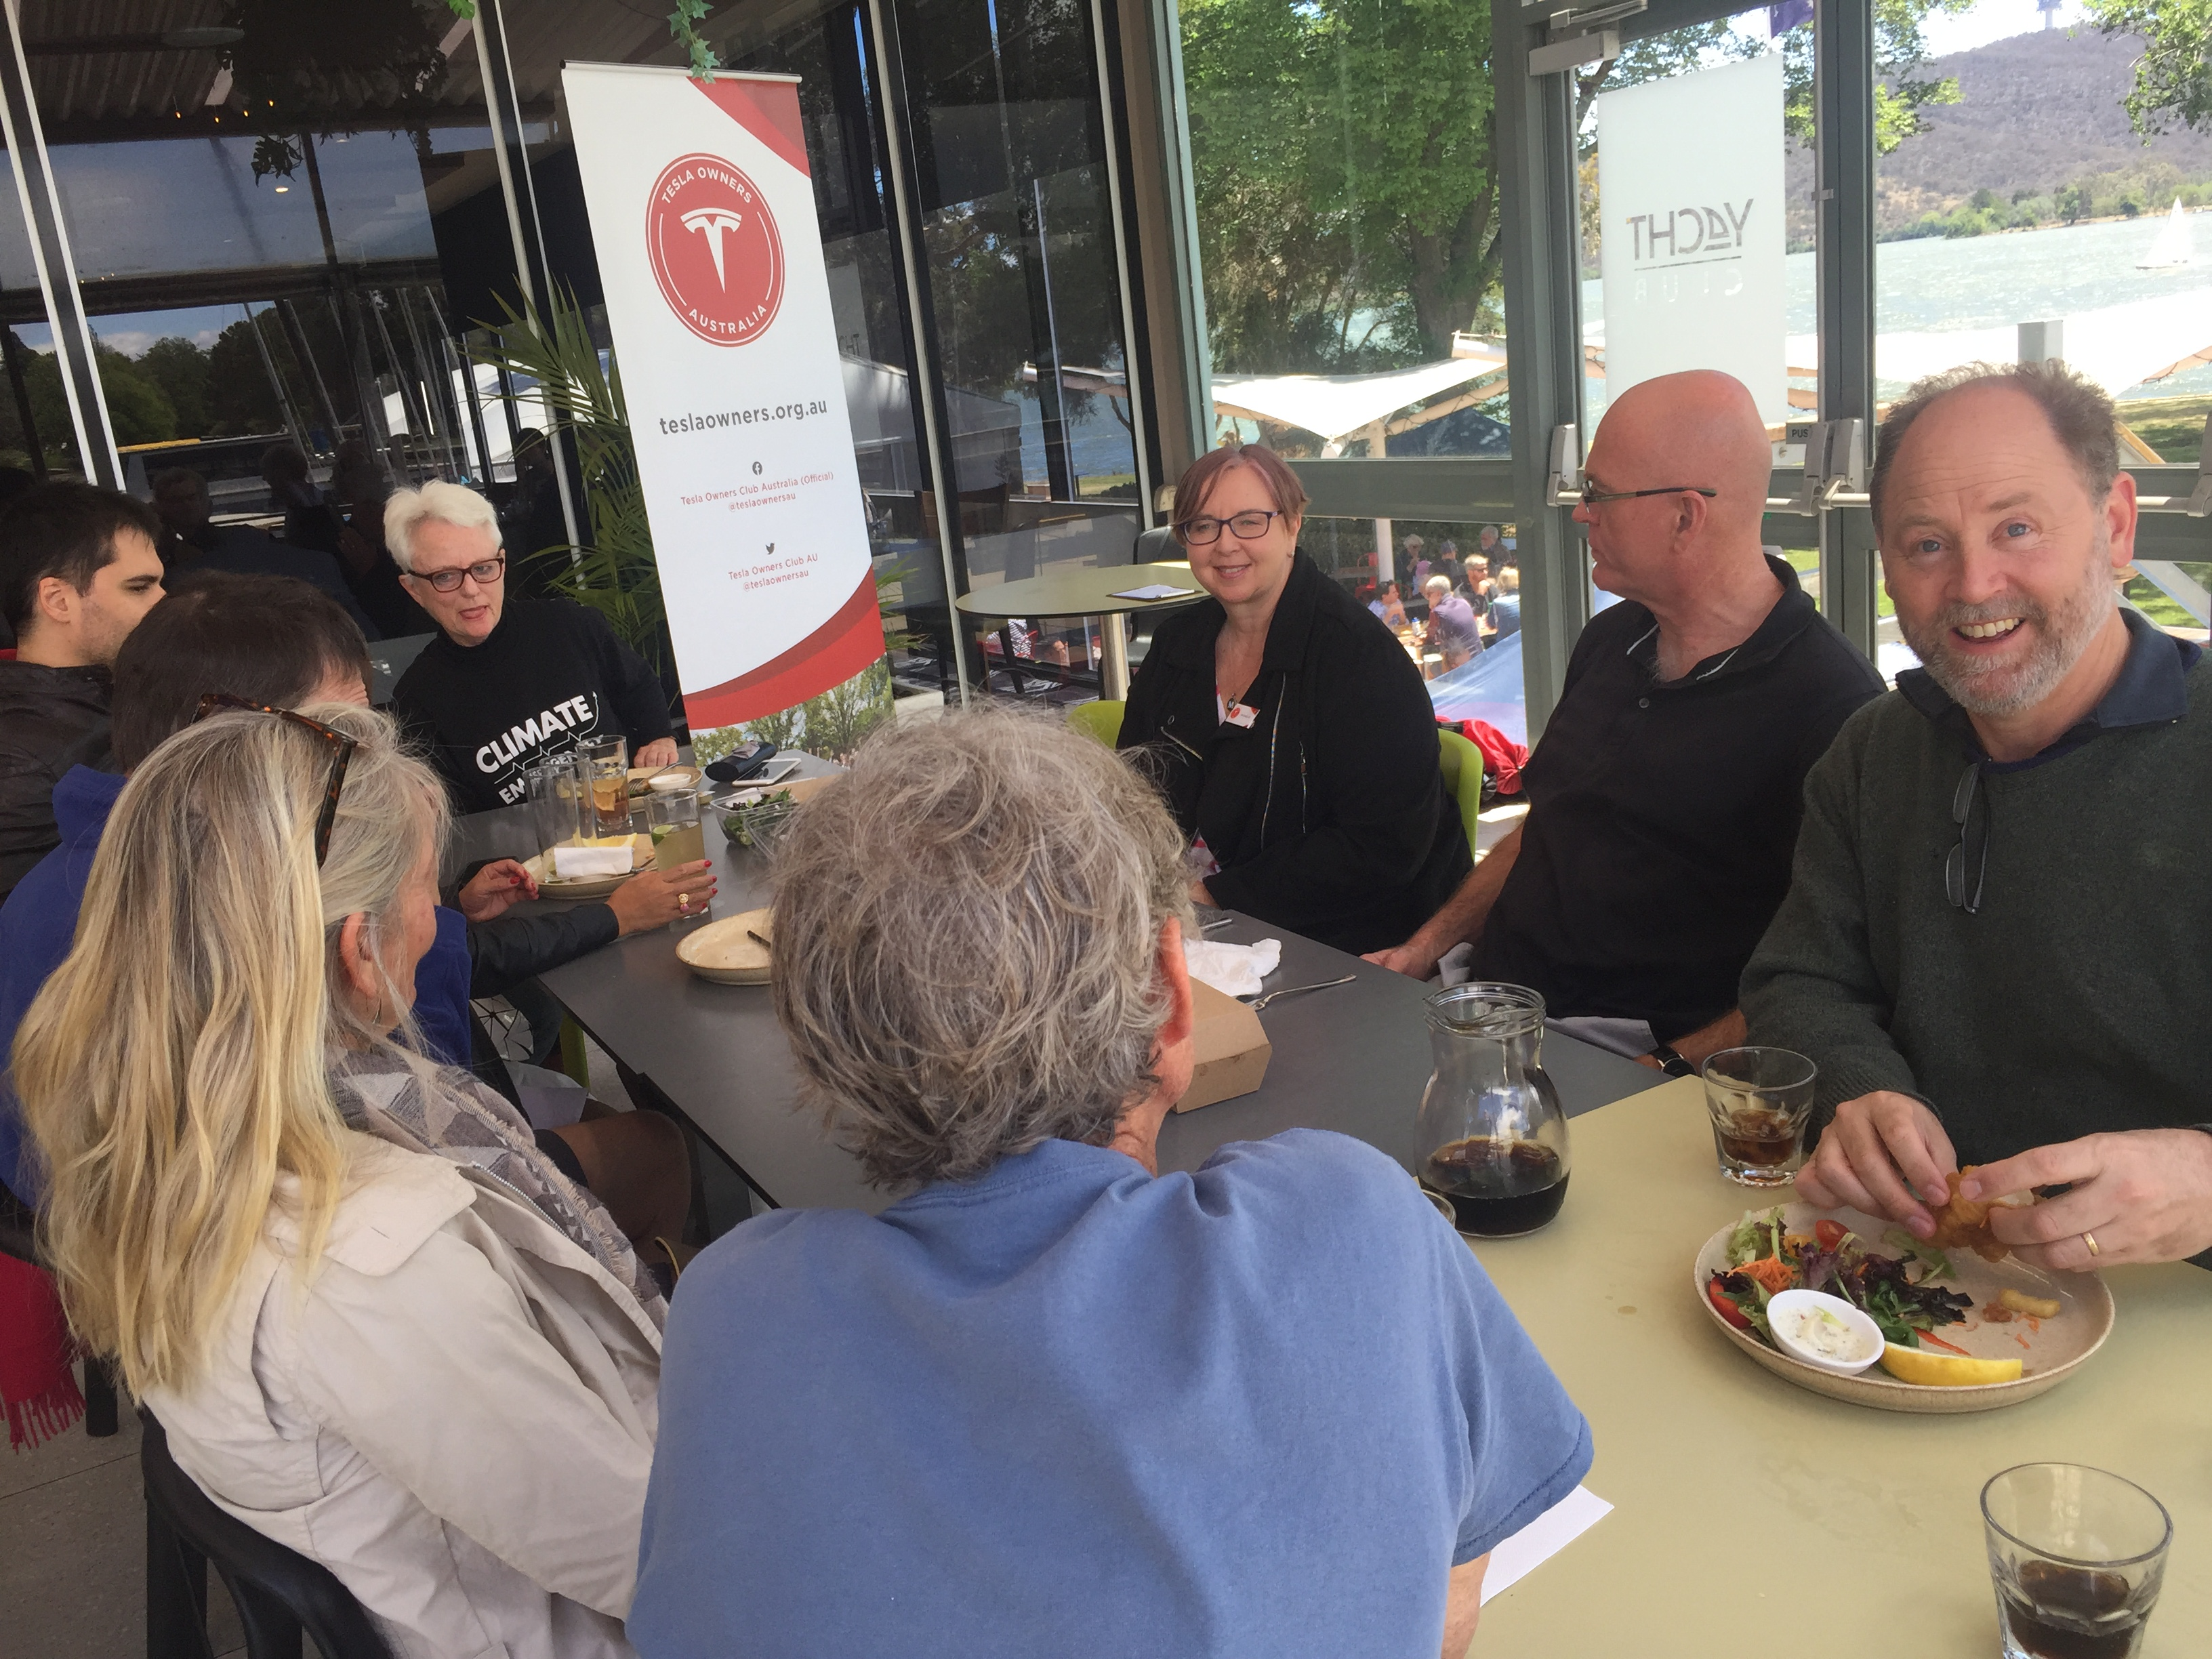 An enjoyable lunch and camaraderie at the Canberra Yacht Club by 10+ members.